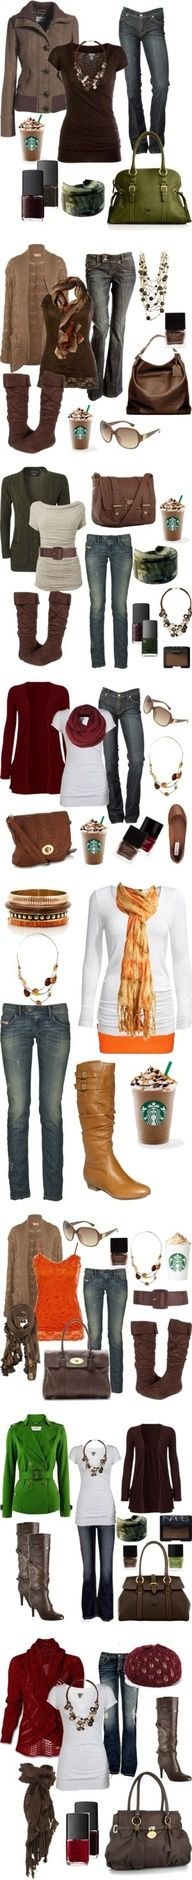 """Outfits---NYC Trip @Nicky Garcia"""" data-componentType=""""MODAL_PIN"""